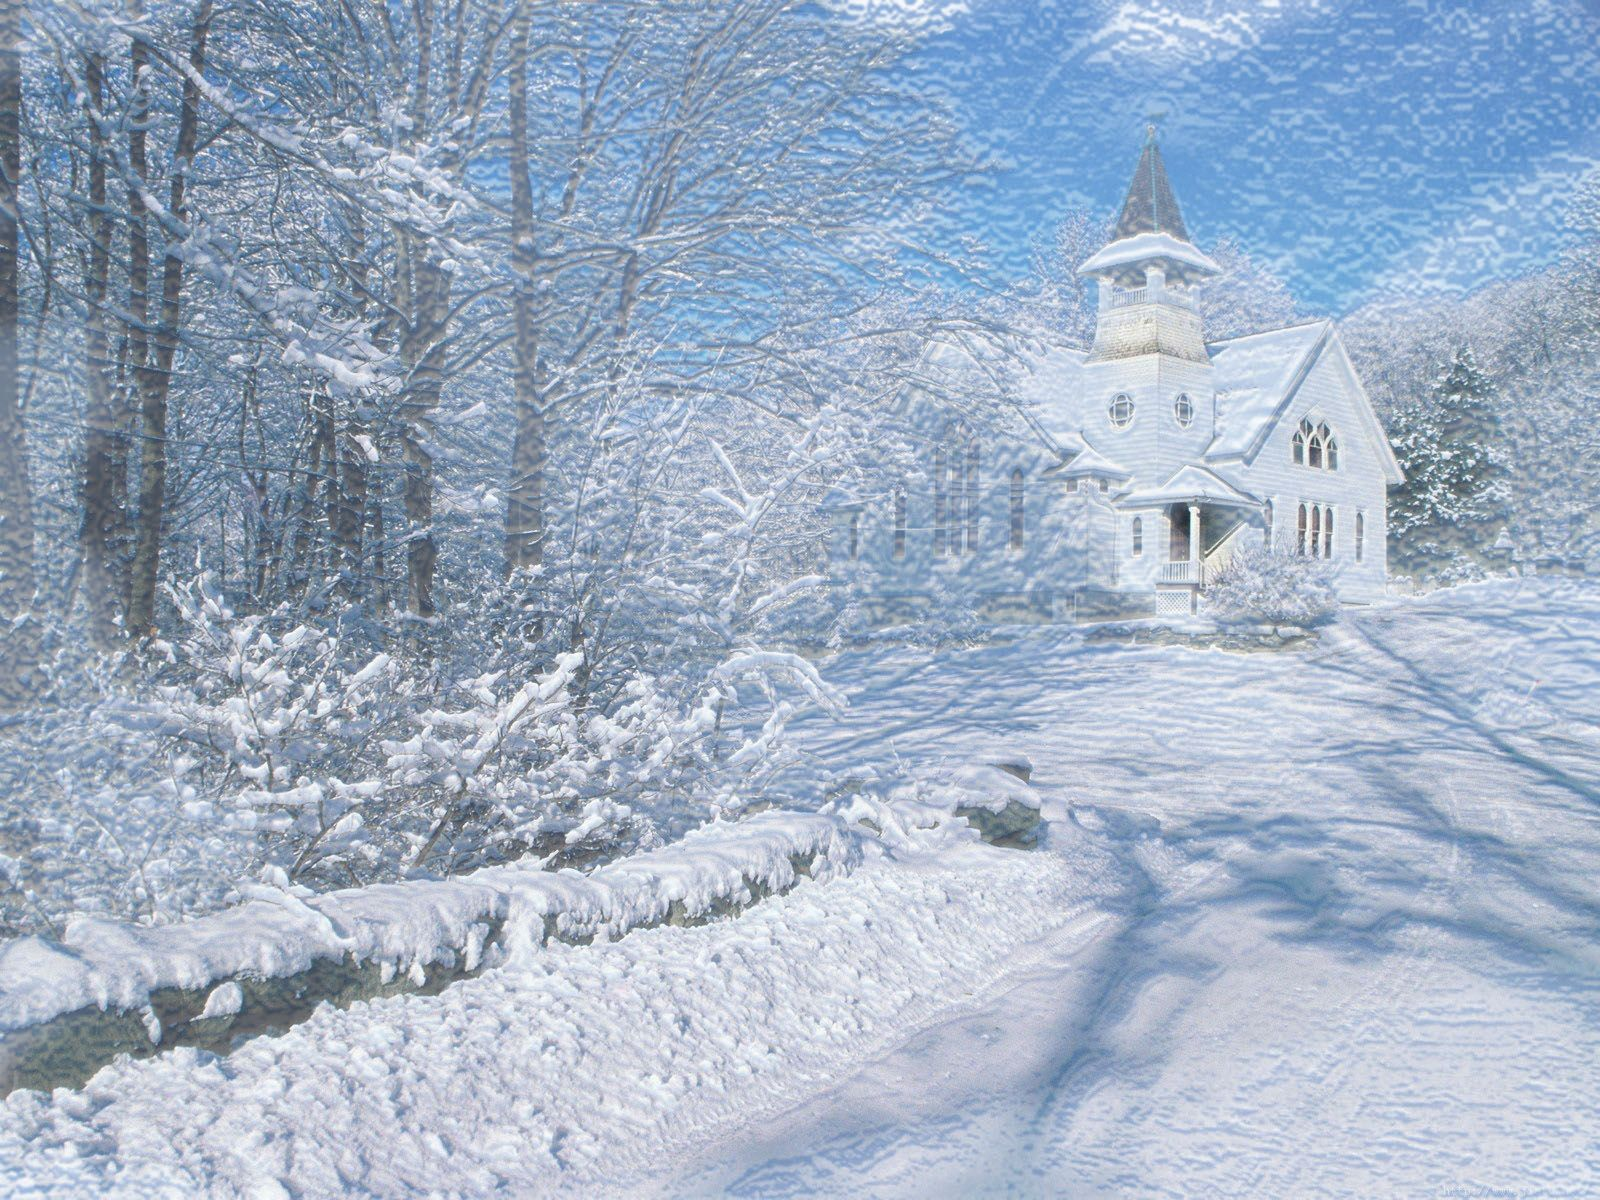 Live winter wallpaper for pc free download